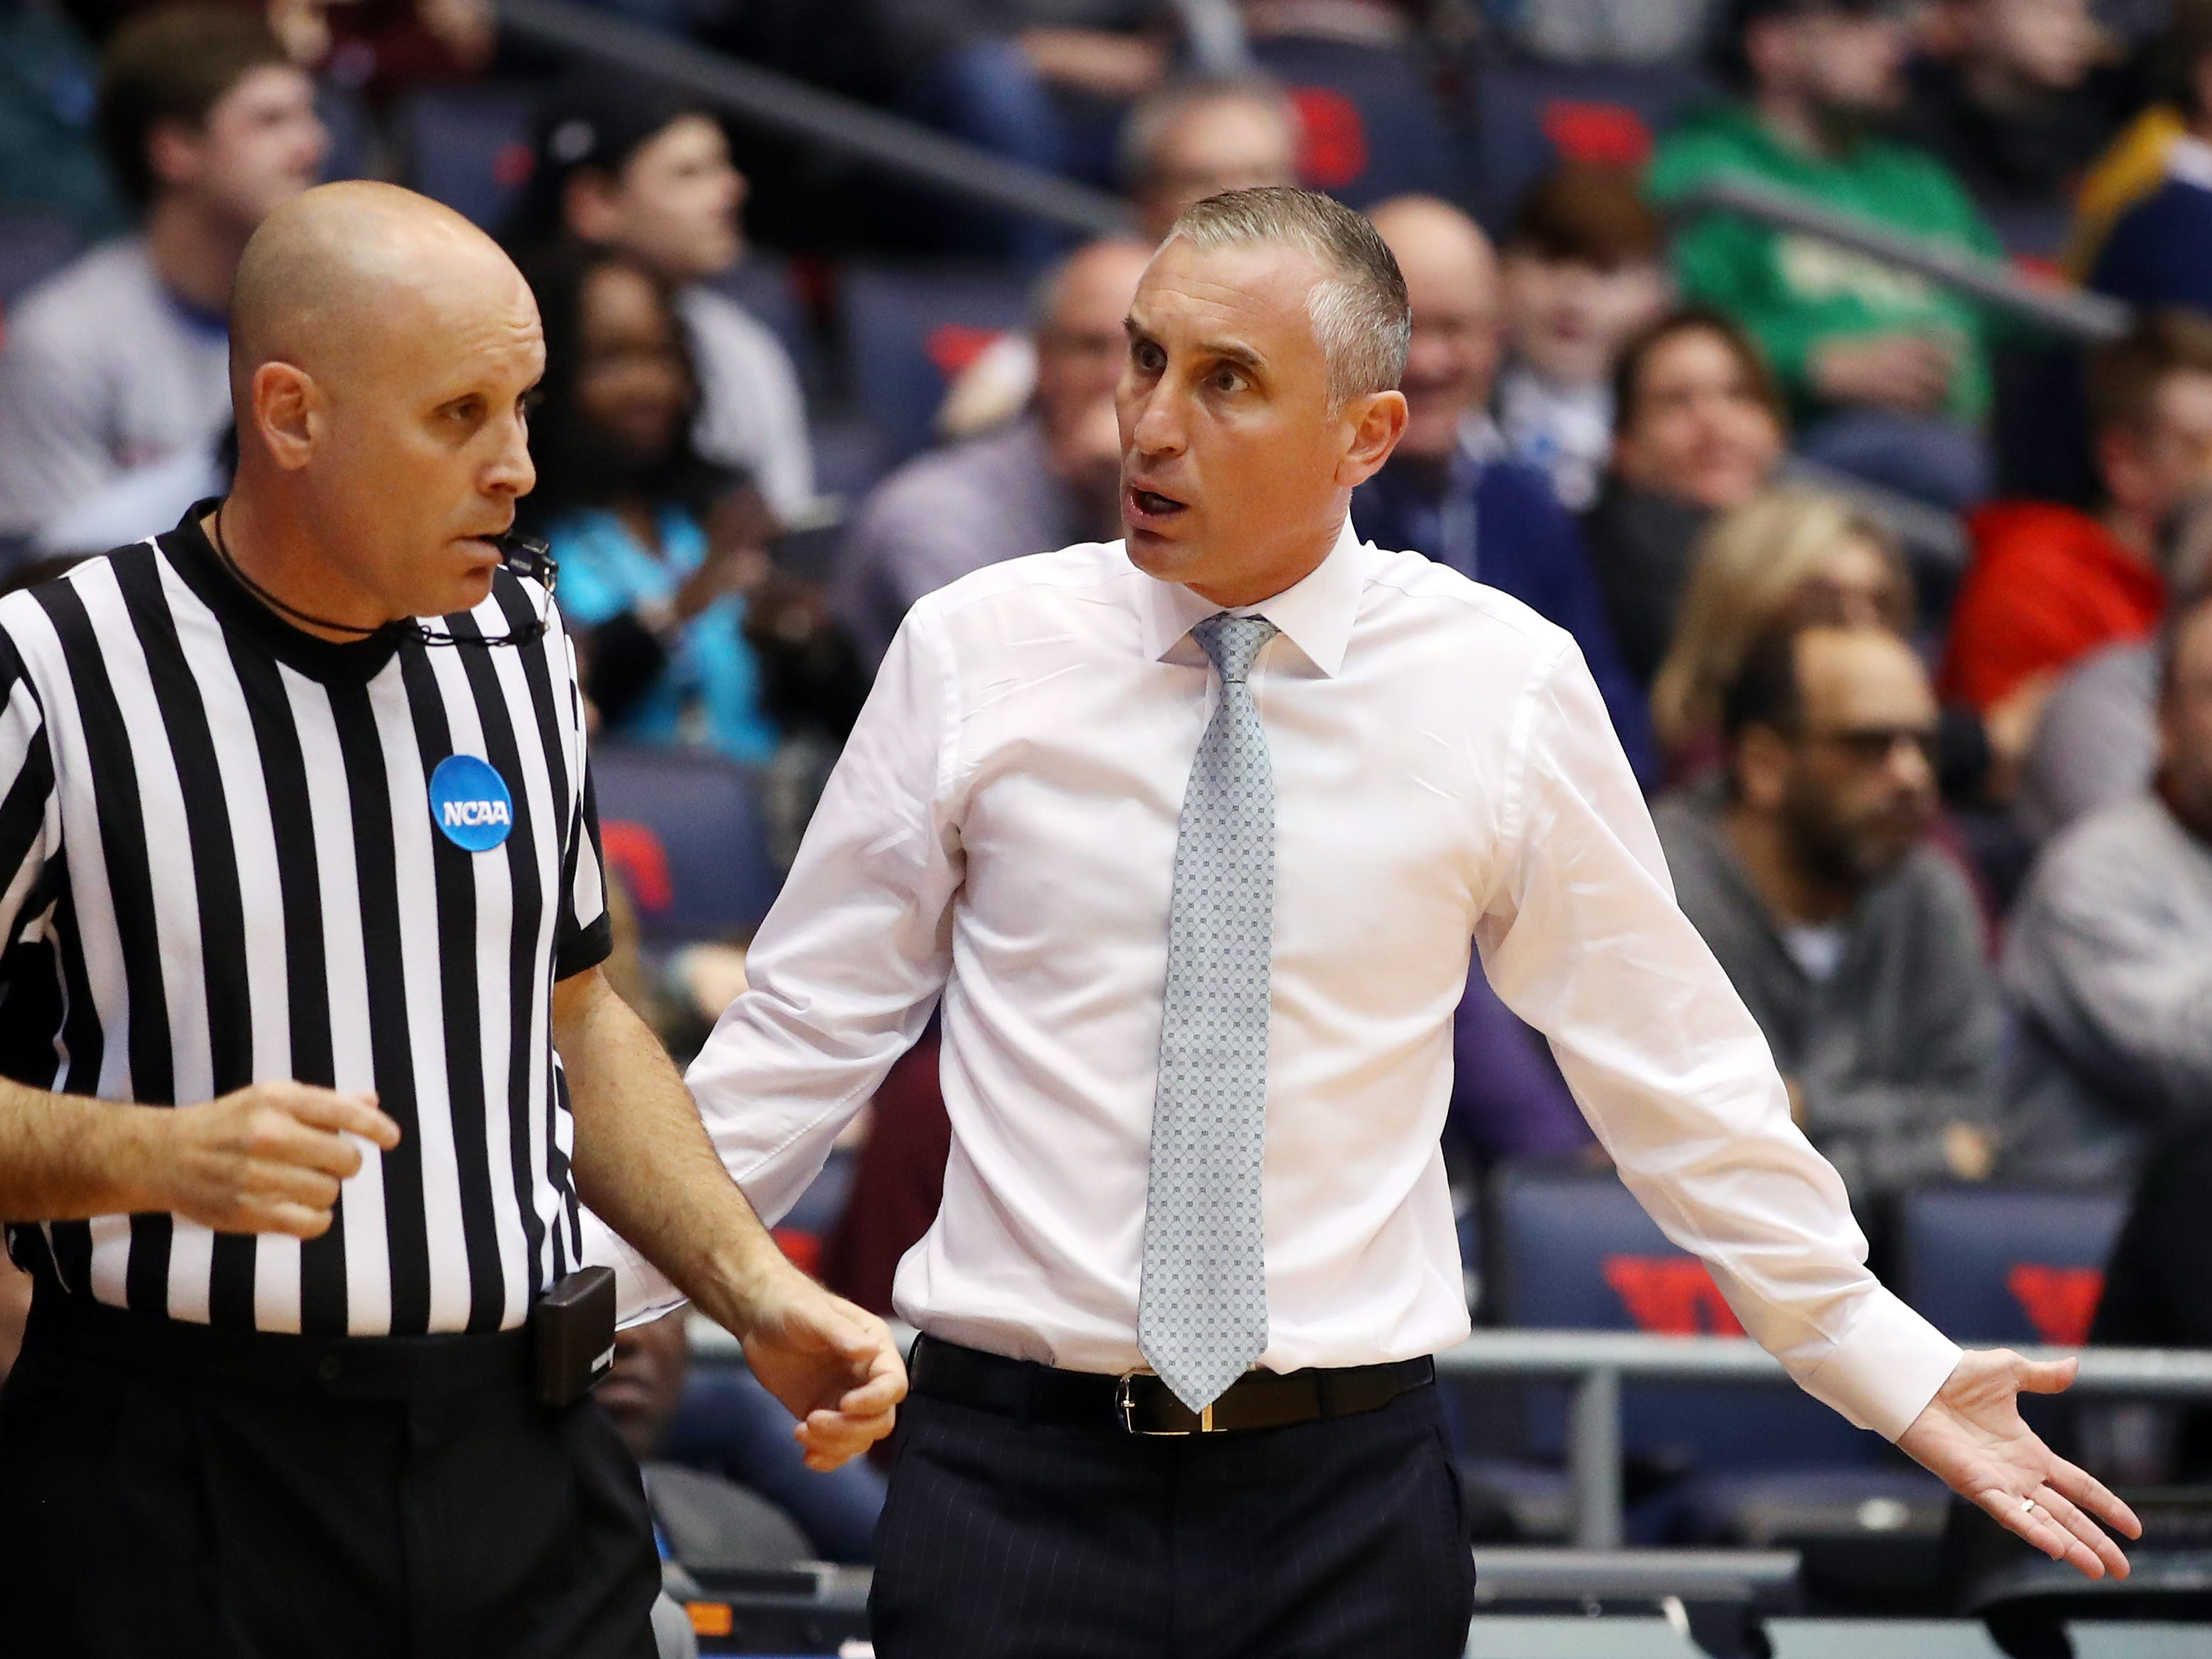 Head coach Bobby Hurley of the Arizona State Sun Devils reacts to a referee during the first half against the St. John's Red Storm in the First Four of the 2019 NCAA Men's Basketball Tournament at UD Arena on March 20, 2019, in Dayton, Ohio.